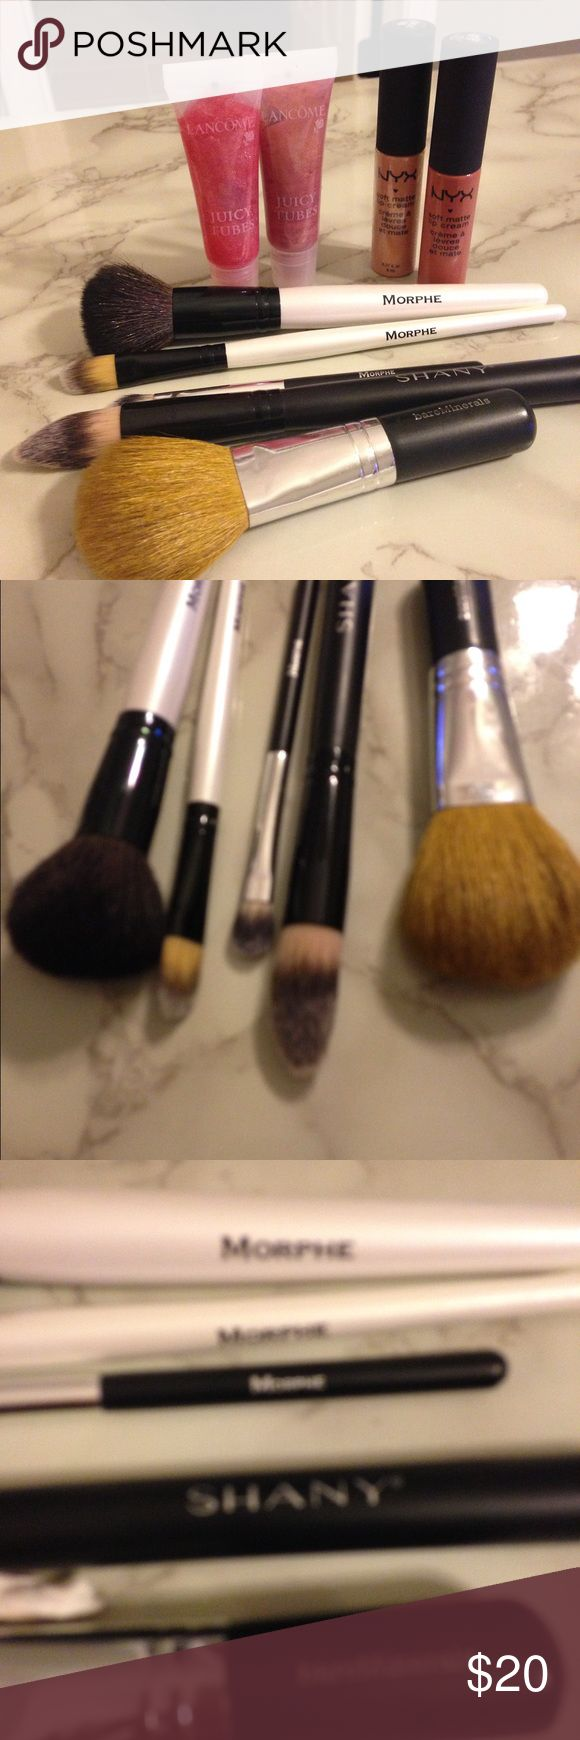 5 Brush Bundle brand names   Brush bundle 5 brushes total 3 Morphes Blush or powder small eyeshadow and contour or foundation brush, one Shay liquid foundation brush and one BareMinerals brush. Makeup Brushes & Tools